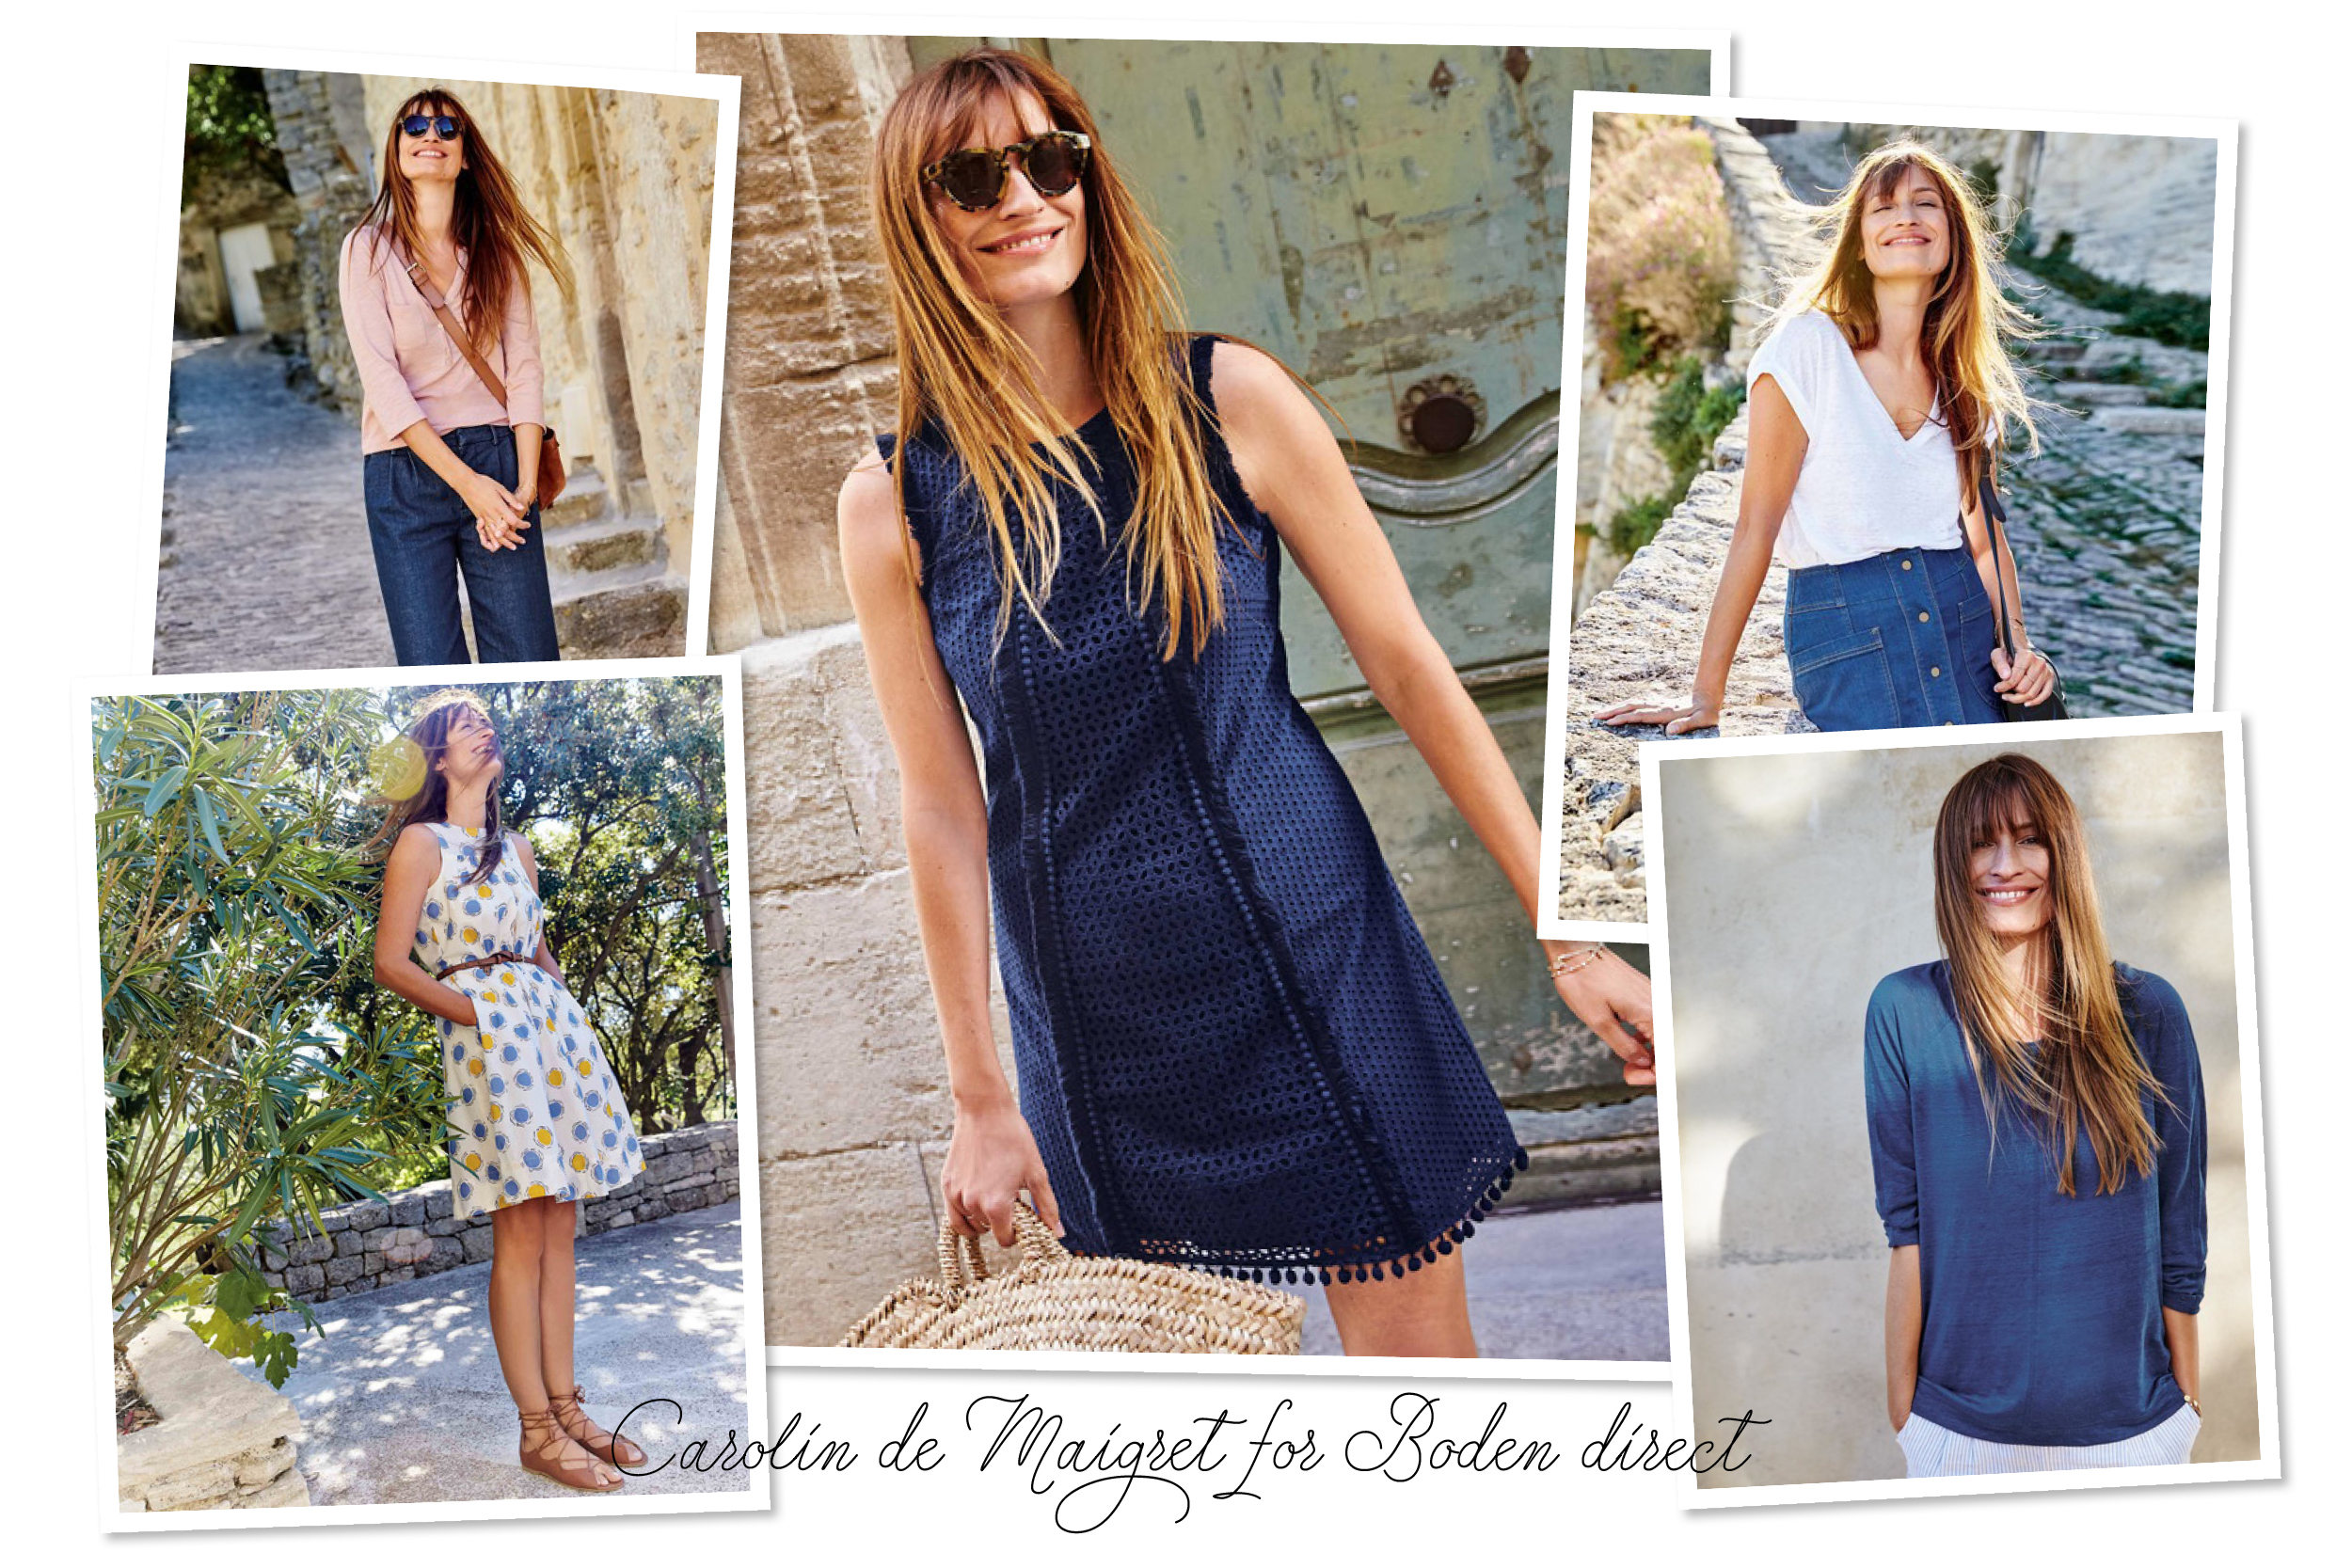 Boden direct X Carolin de Maigret